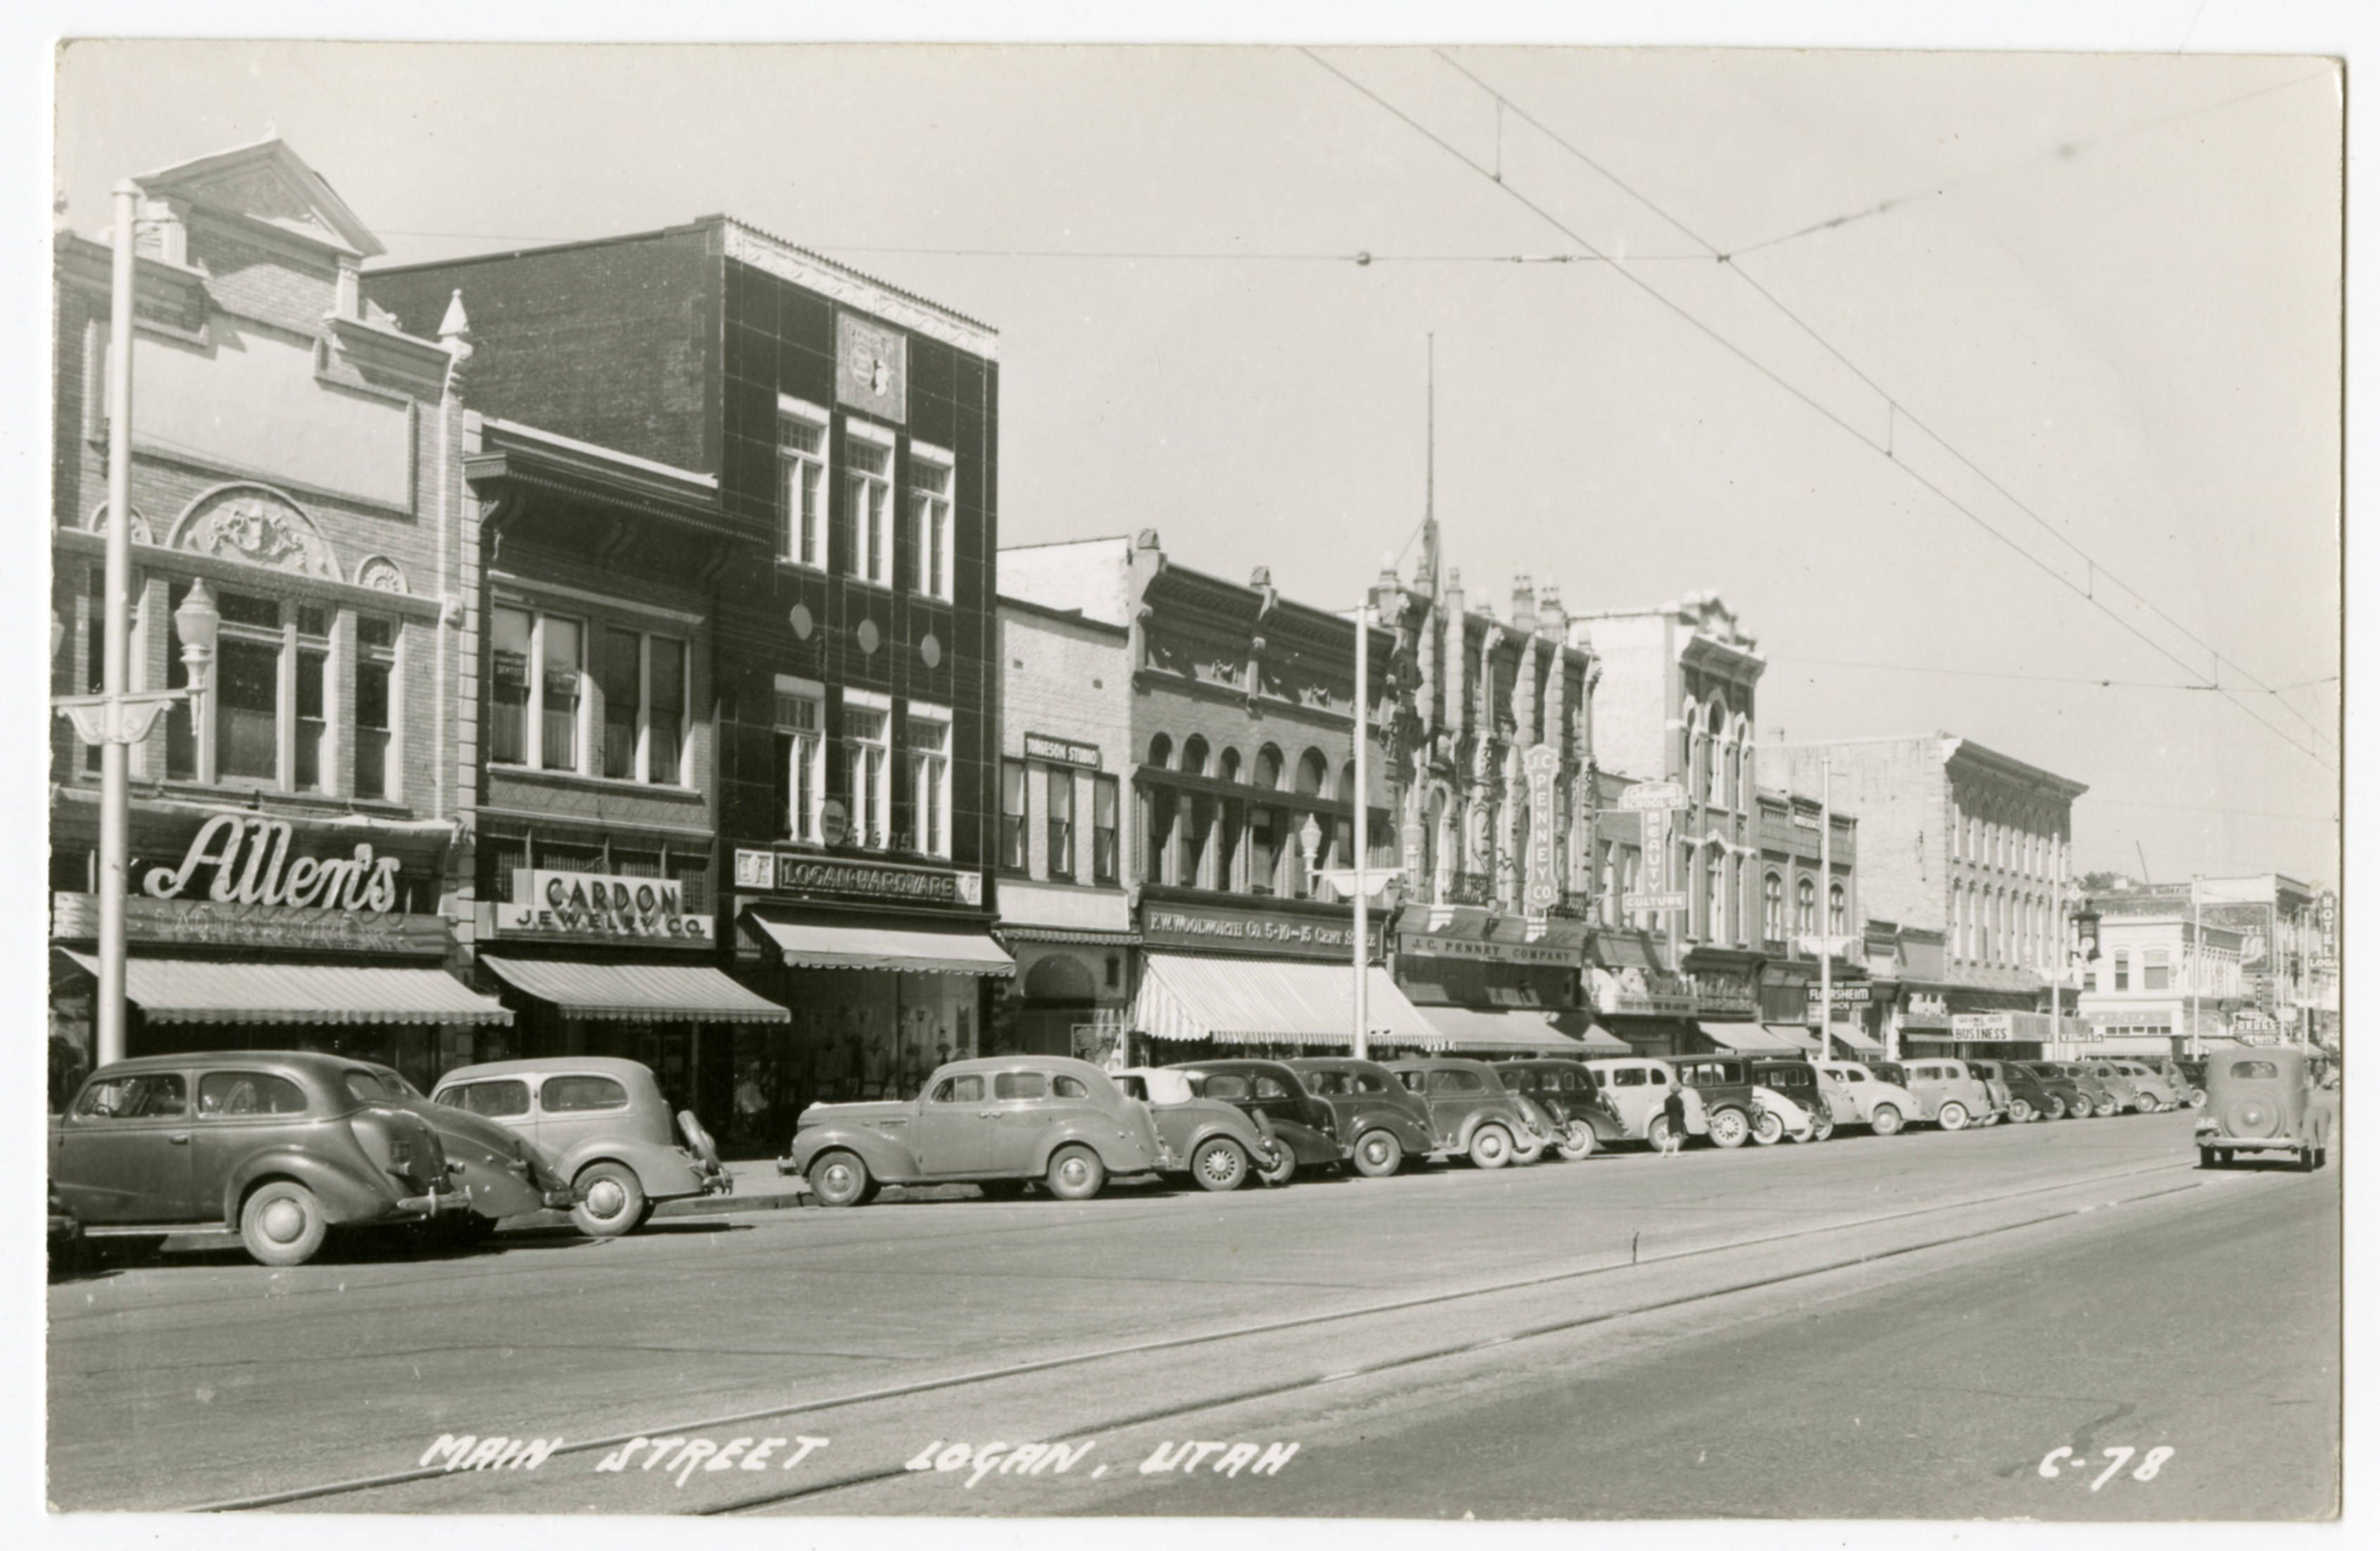 north logan utah history pictures Google Search